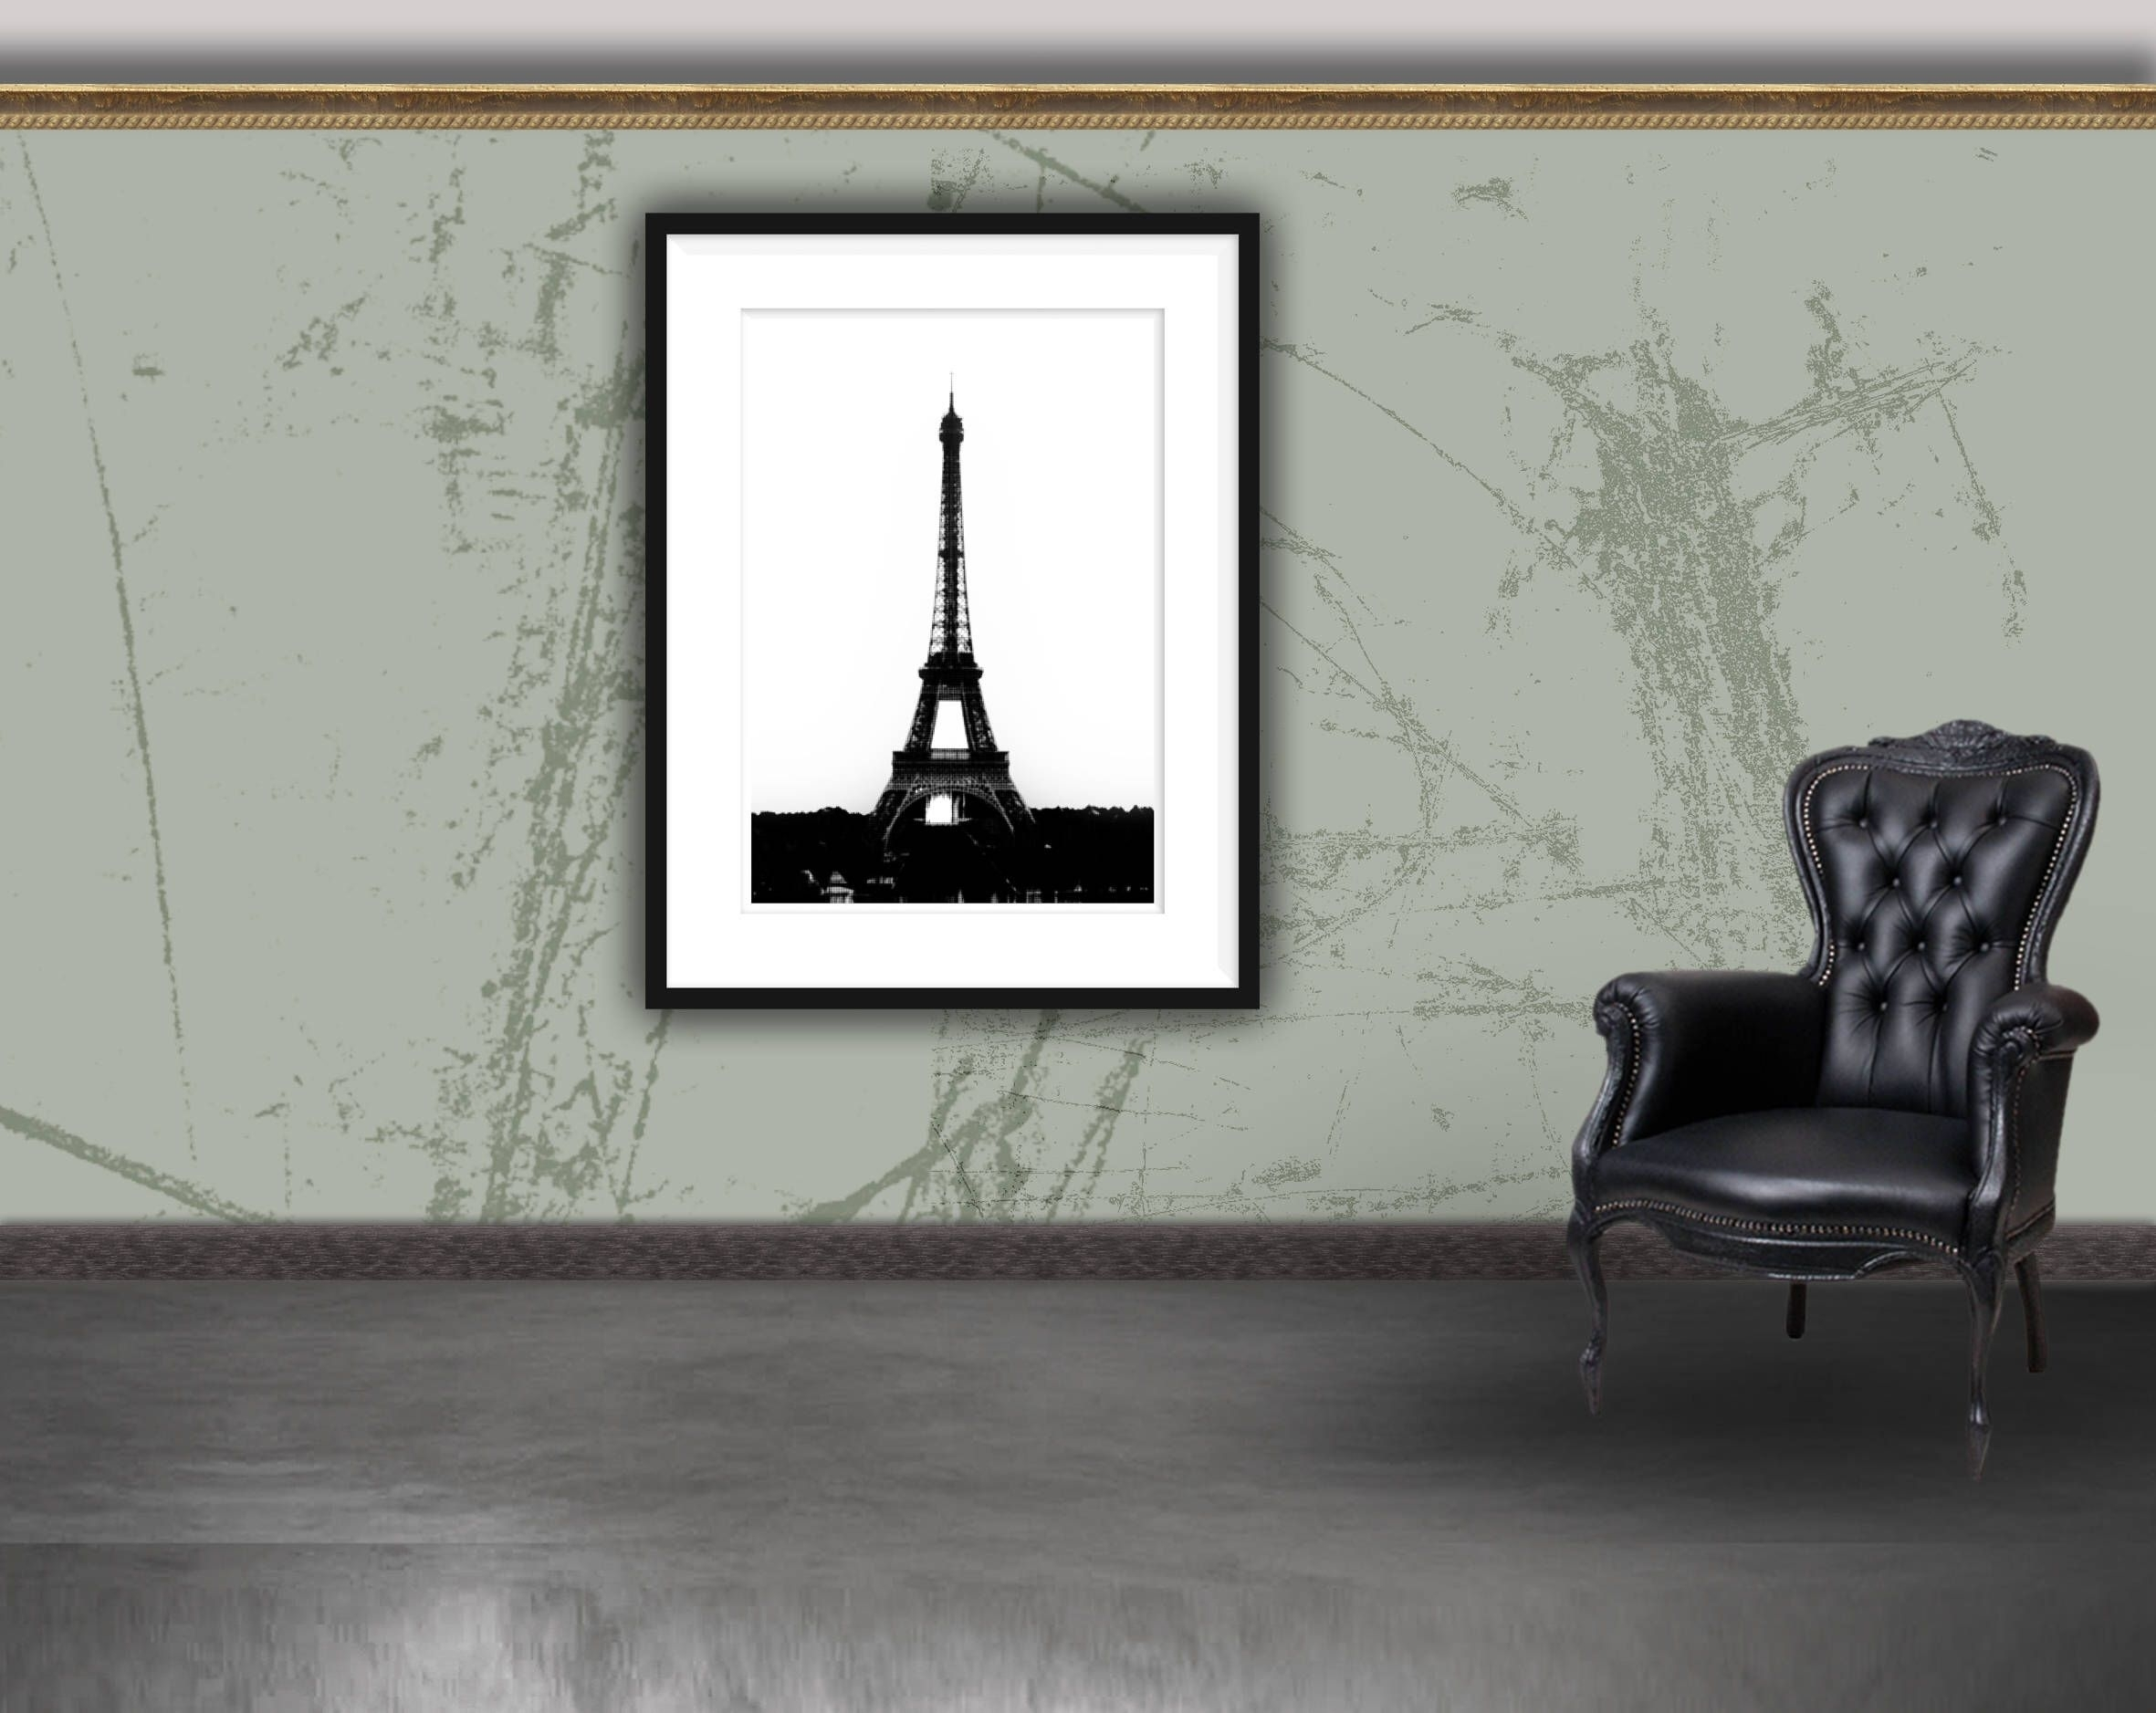 Paris Wall Art | Eiffel Tower Print | Paris Poster | Paris Print With Regard To Most Recently Released Paris Wall Art (View 11 of 15)